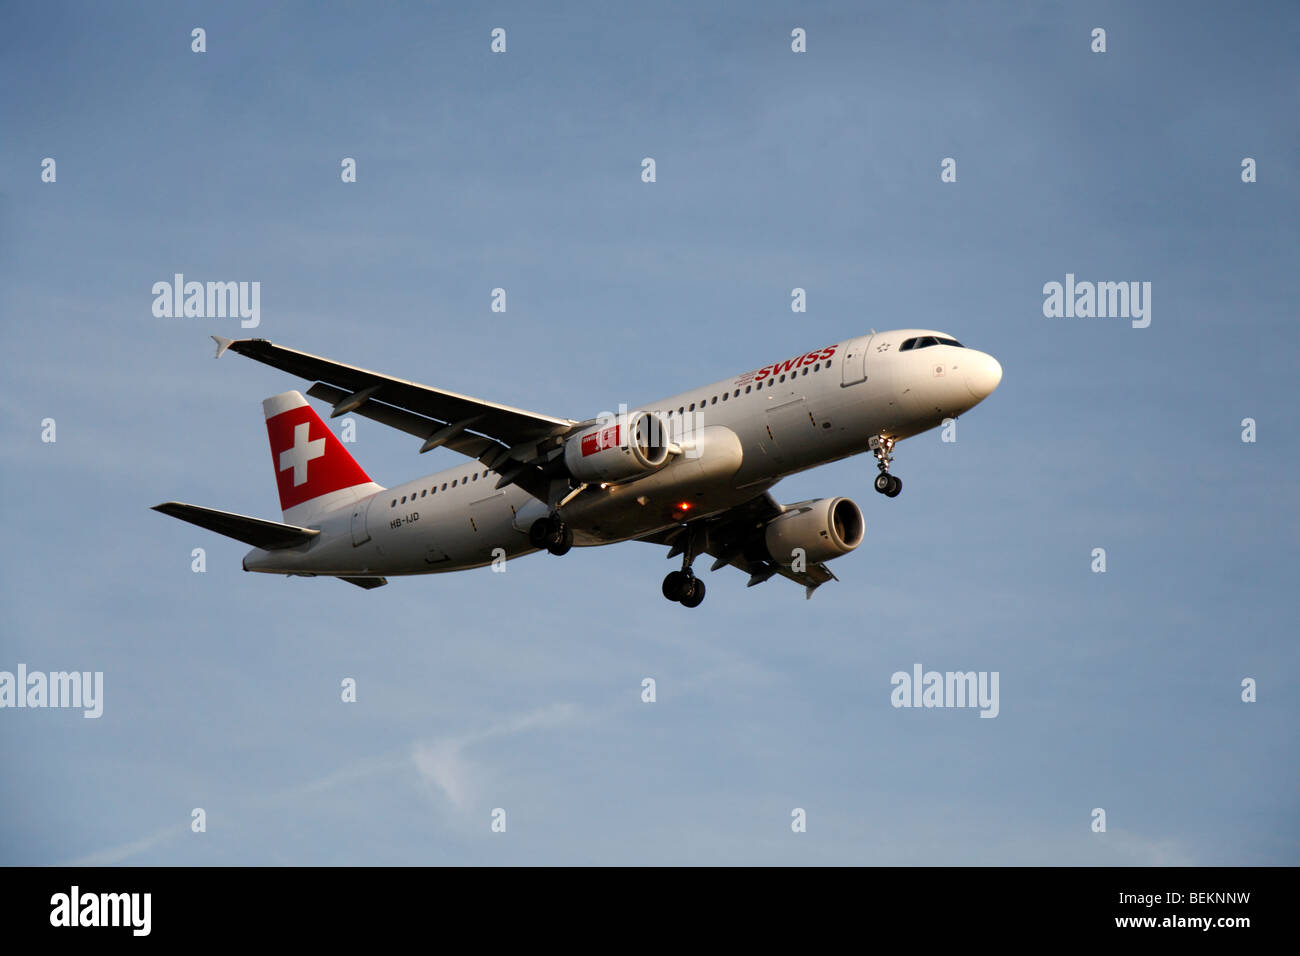 A Swiss Airbus A320-214 coming in to land at London Heathrow, UK.  August 2009. (HB-IJD) - Stock Image